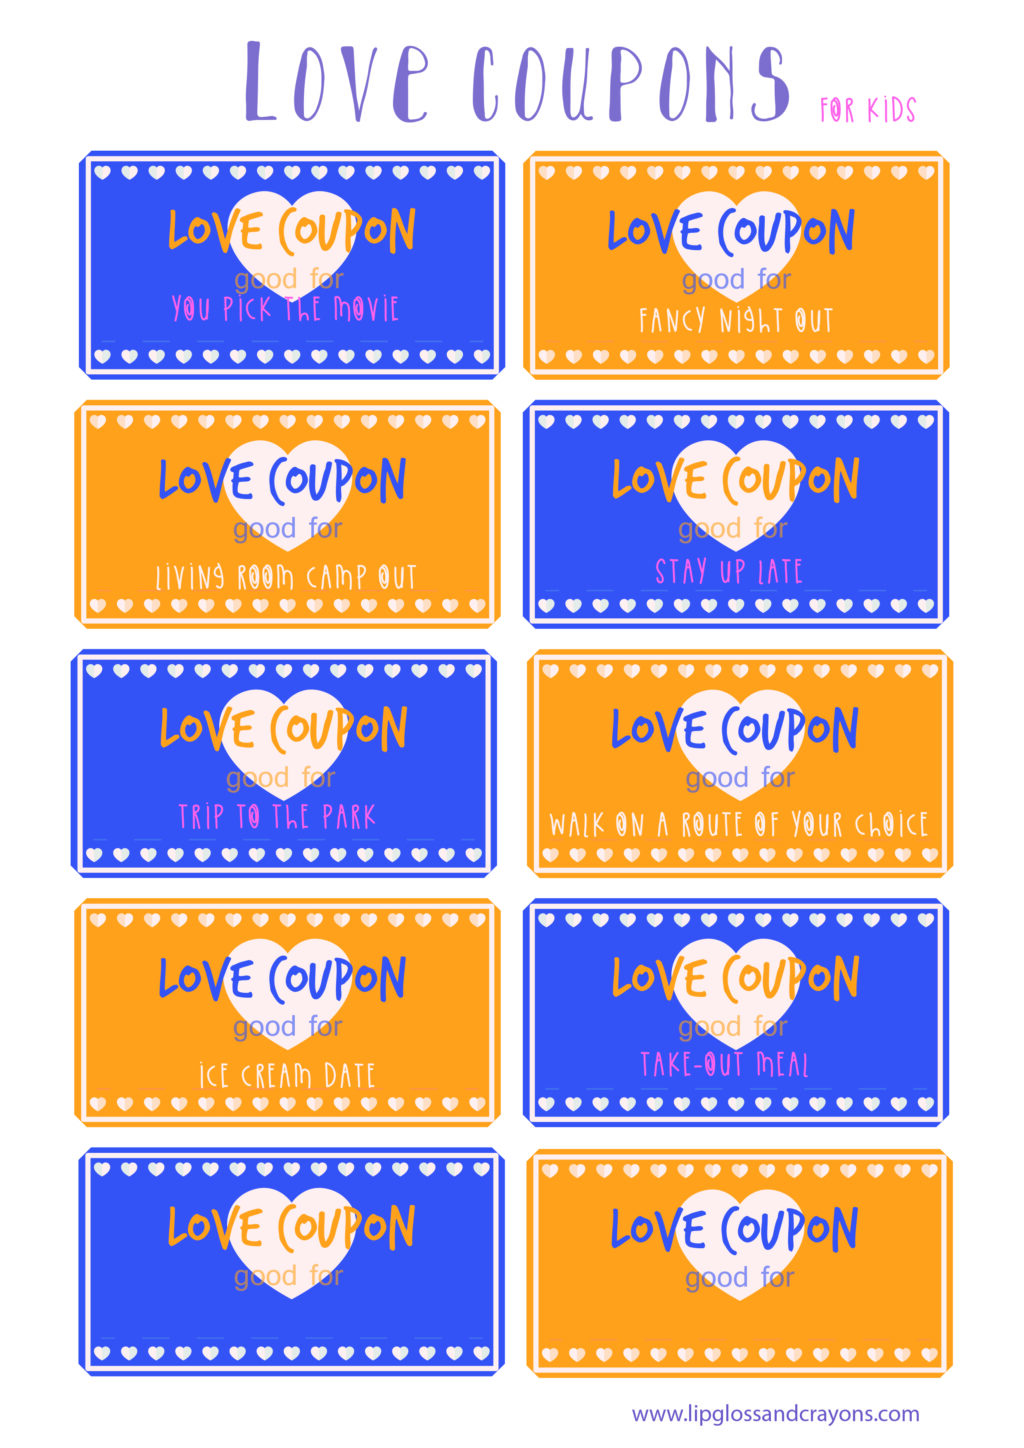 Movie Park Coupon Love Coupons For Kids Lipgloss And Crayons